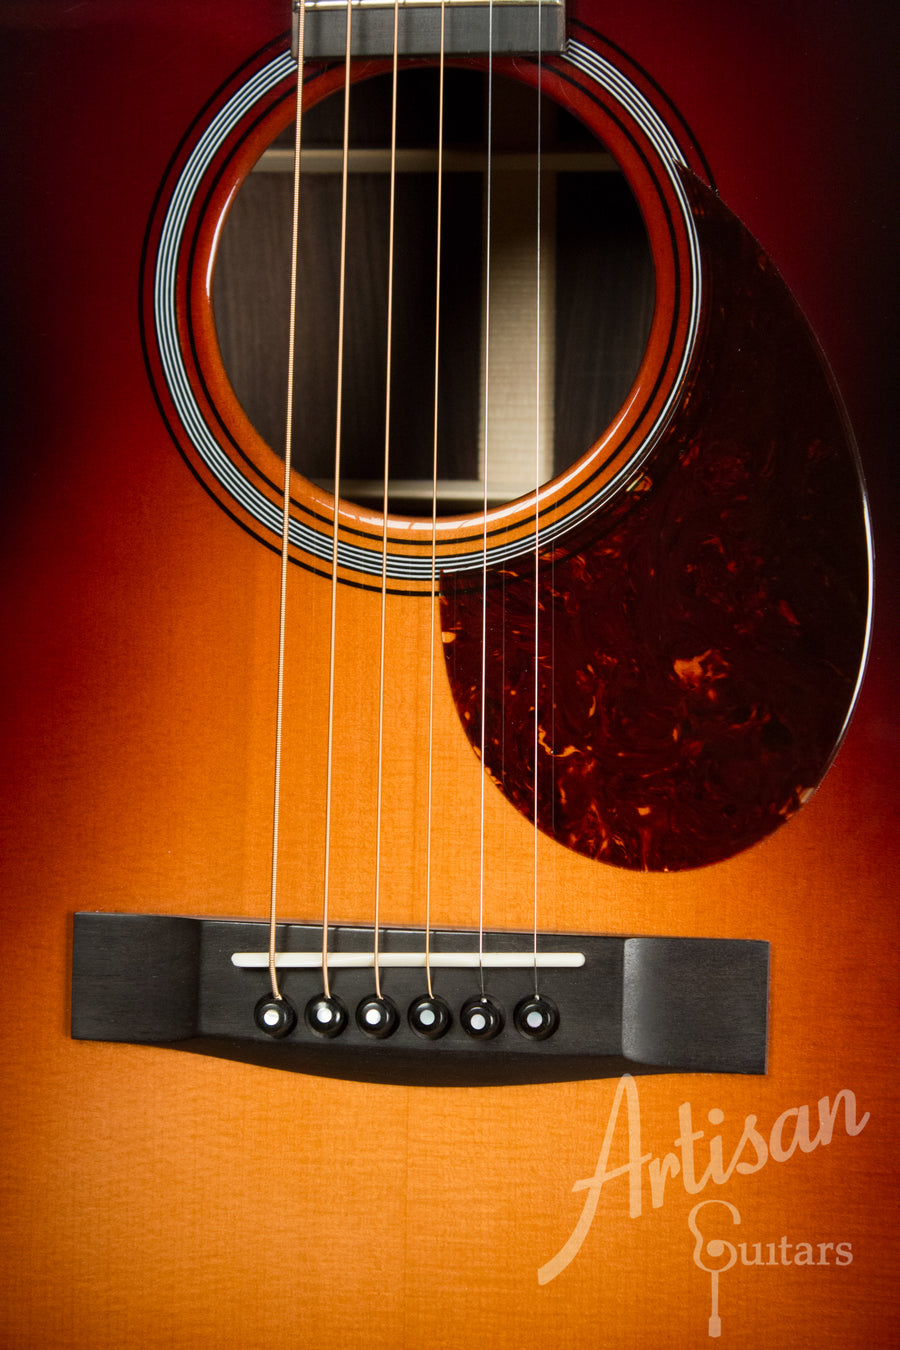 Huss and Dalton Custom T 0014 Englemann Spruce and Indian Rosewood with Sunburst Finish ID-10982 - Artisan Guitars